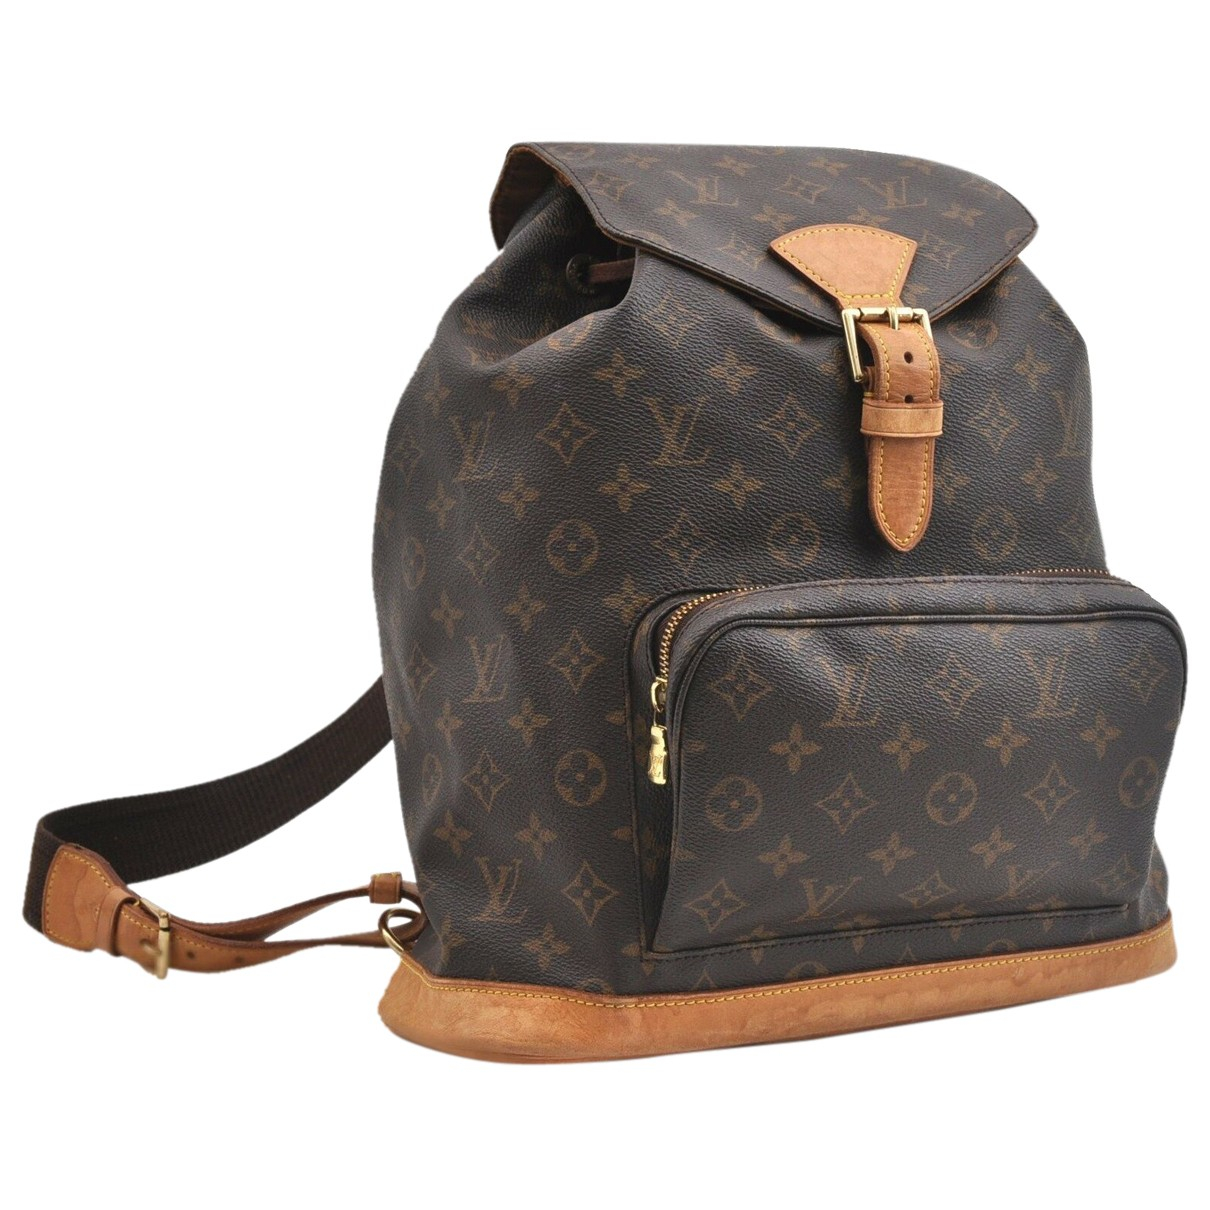 Louis Vuitton \N Rucksaecke in  Braun Leinen